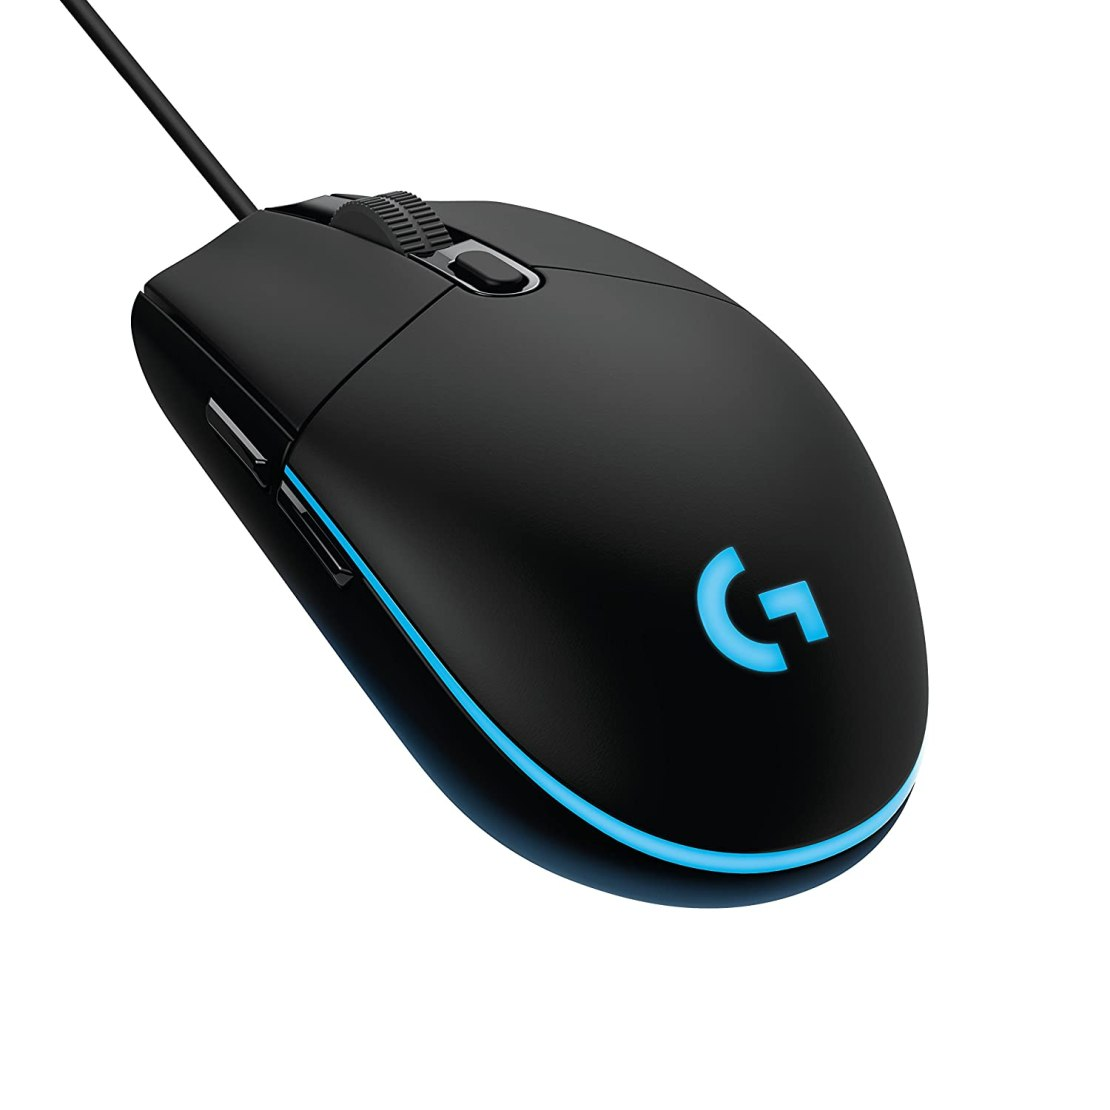 81Xv0xowkSL. SL1500  - 10 Best Gaming Mouse 2019